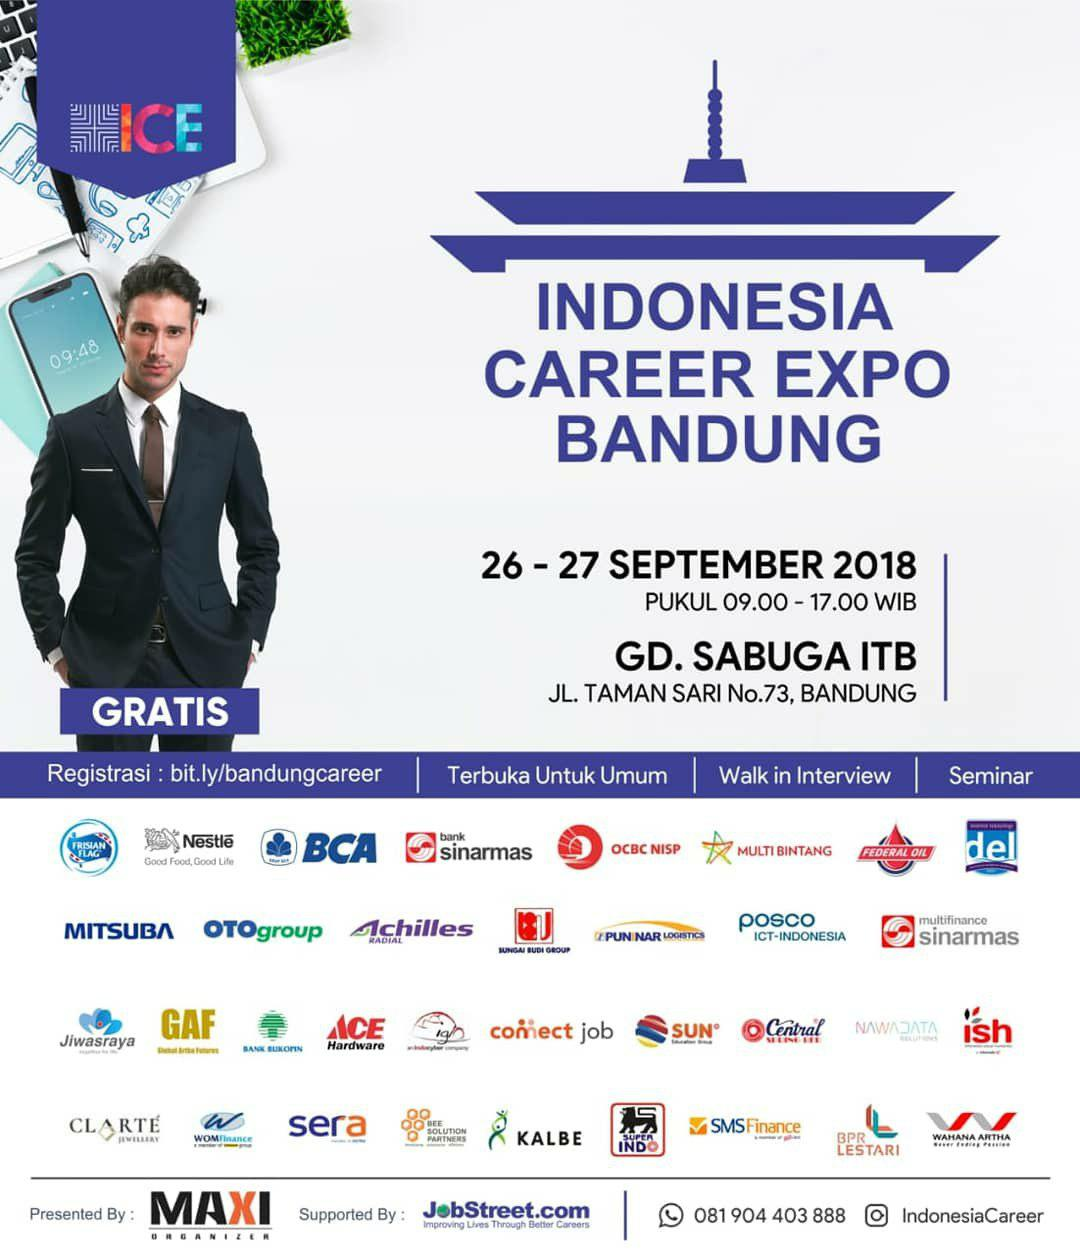 Indonesia Career Expo Bandung 26 - 27 September 2018